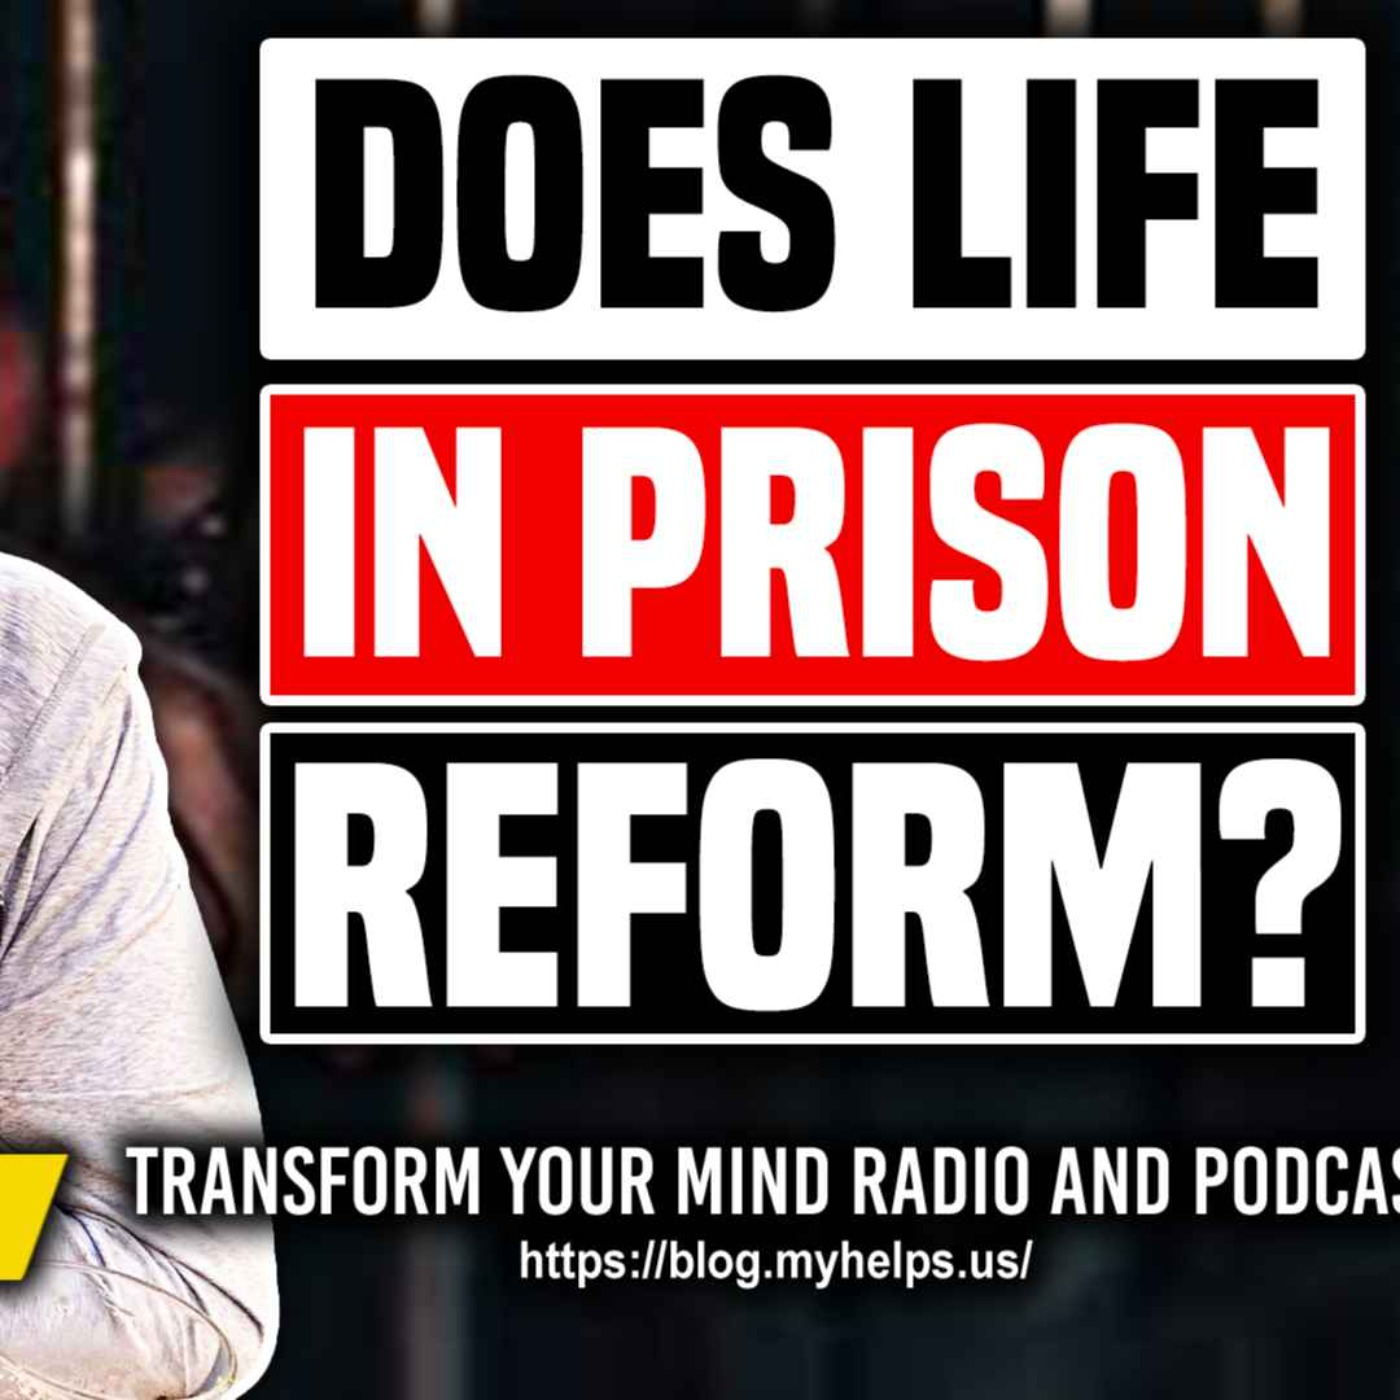 Does Serving a Prison Sentence Affect Change?